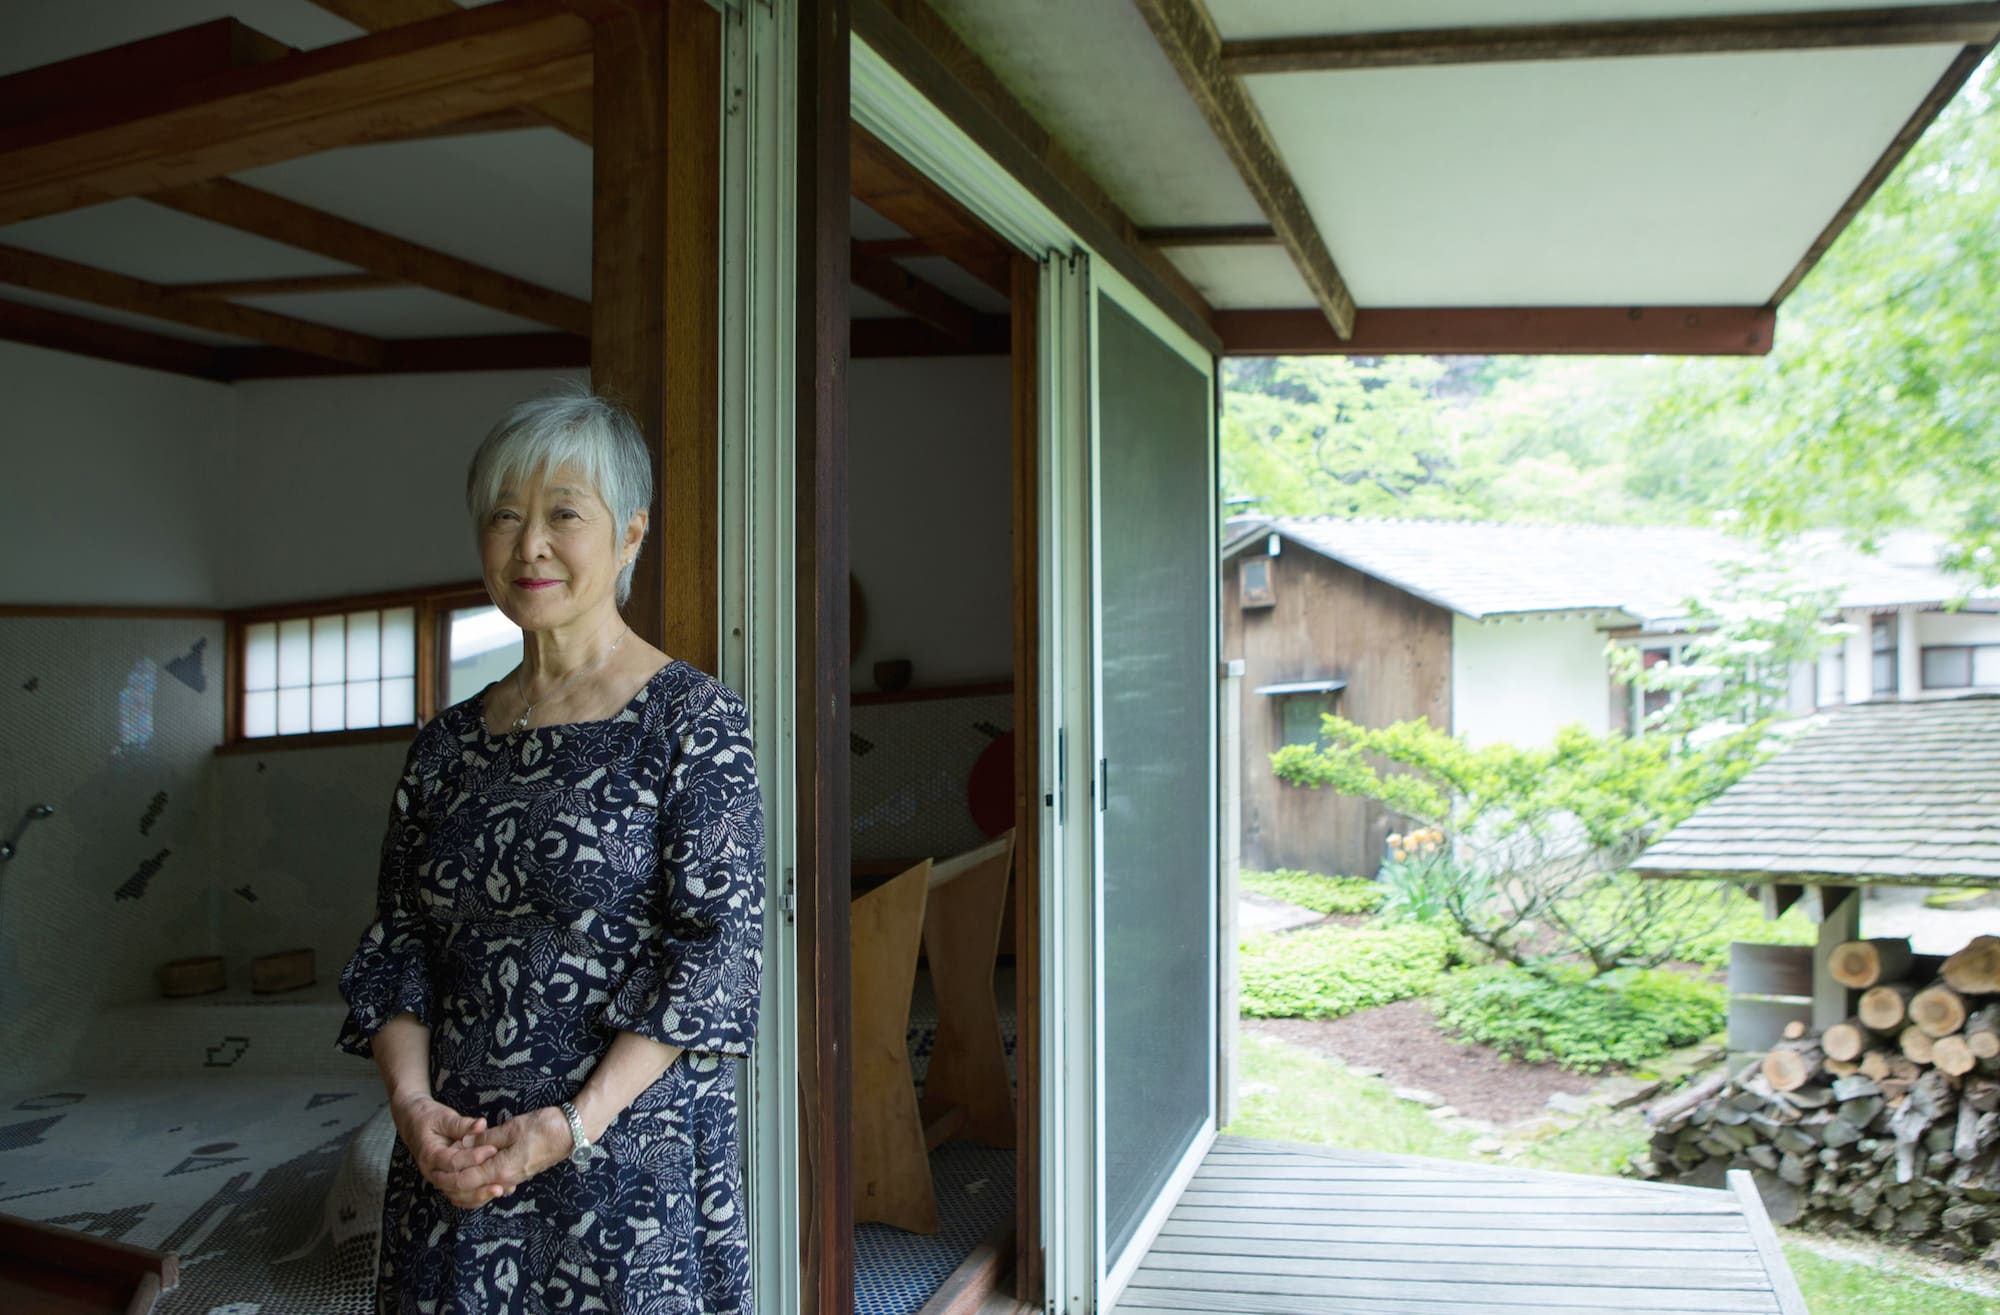 Mira Nakashima outside of her house in New Hope, PA.